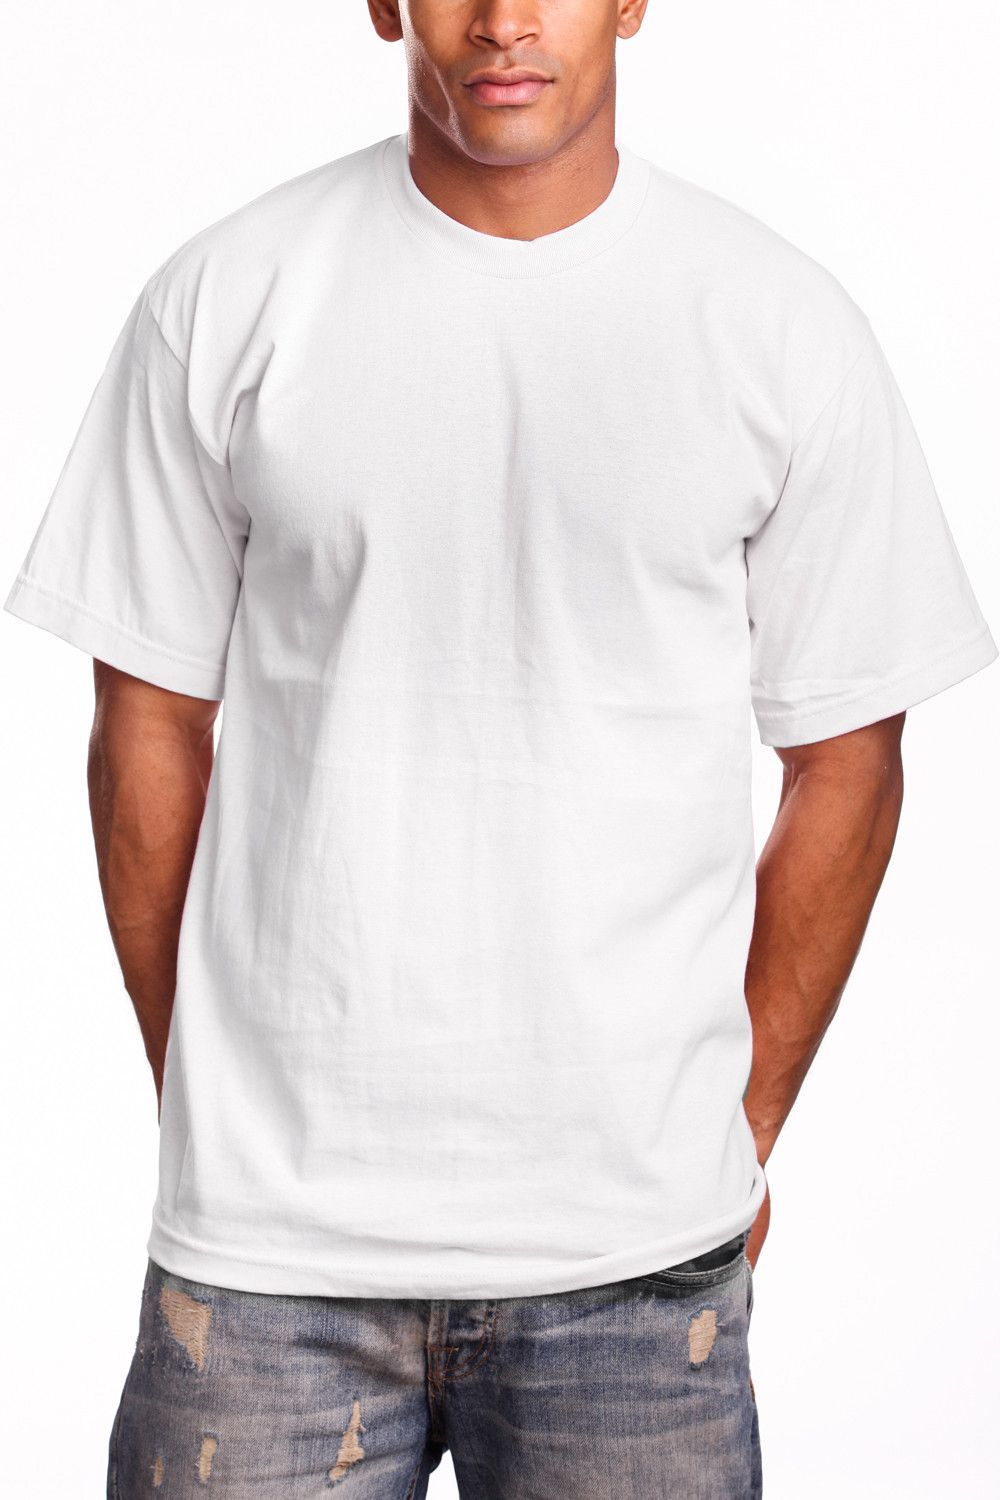 Athletic fit tshirts in 2020 plain white t shirt t